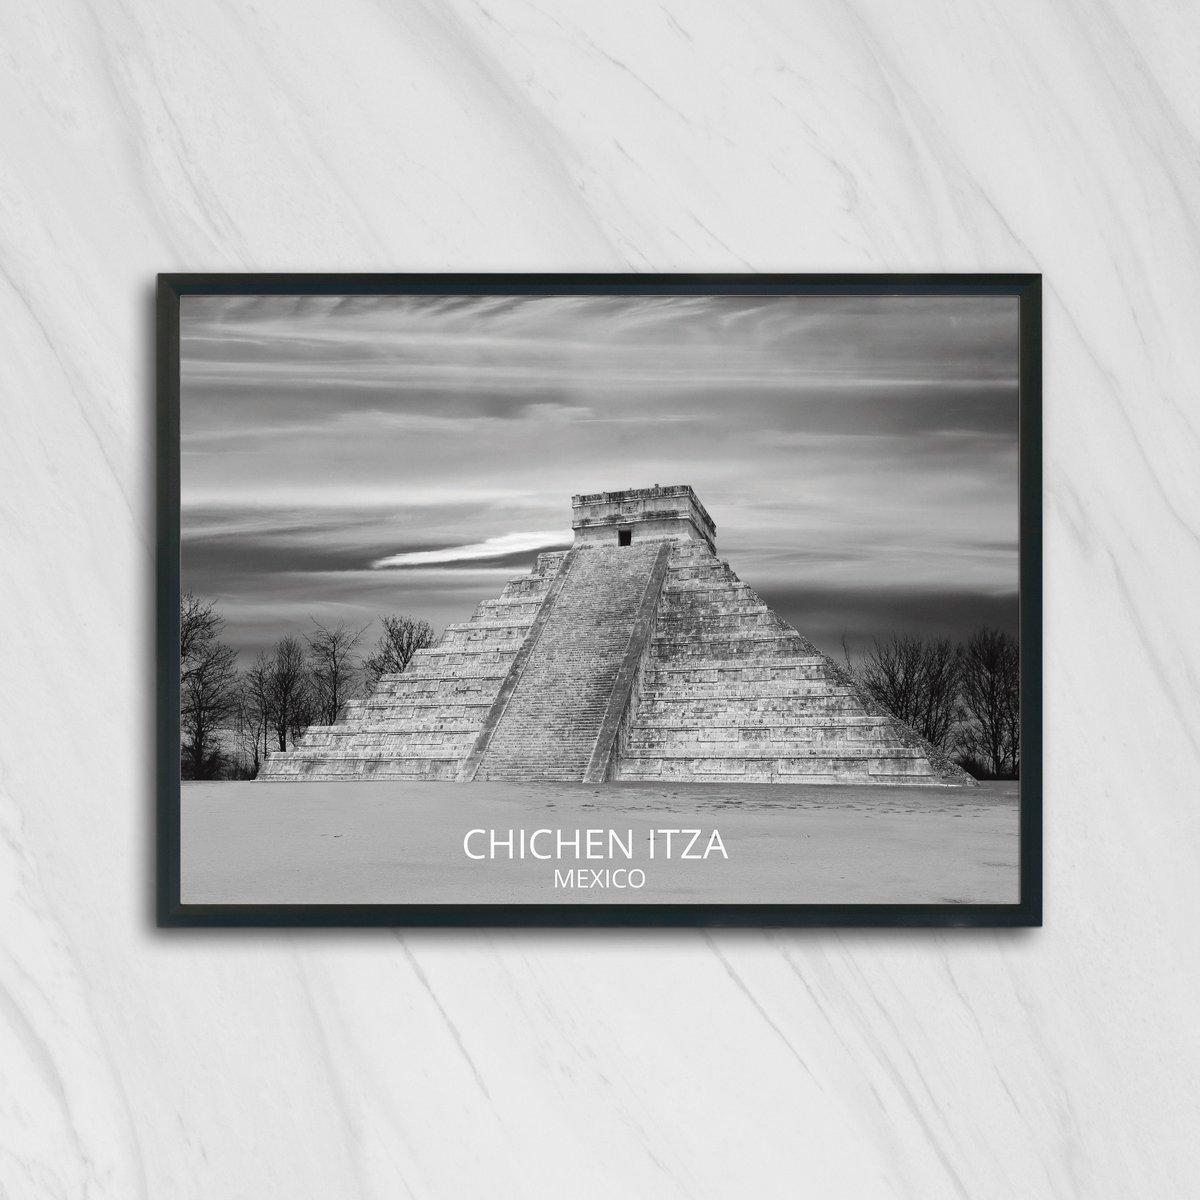 Excited to share the latest addition to my #etsy shop: Chichen itza, mayan ruins, mayan wall art, mayan decor, mayan art, mayan aztec, mayan print, mayan designs, mayan symbols, mayan symbols  #art #drawing #black #moving #christmas #white